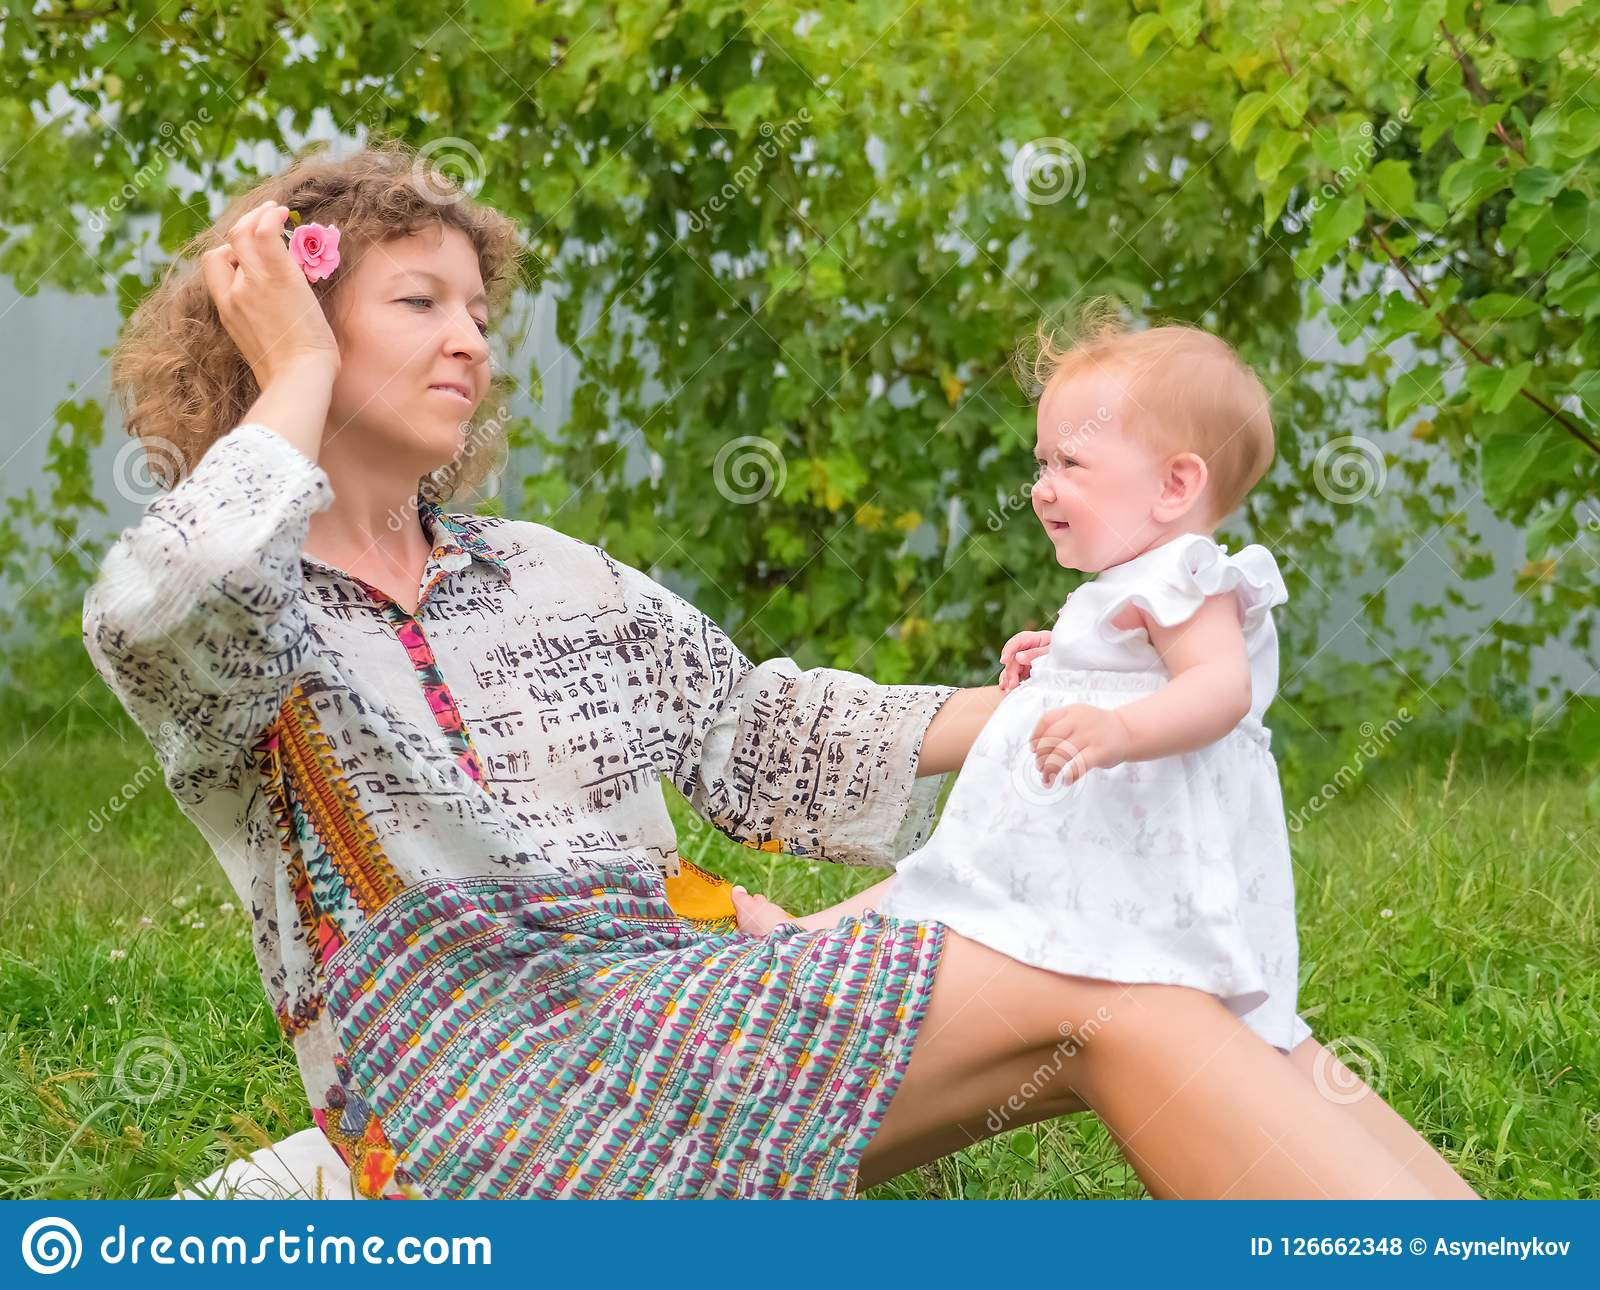 Mother and child. Happy parenting concept. Happy childhood background. Family background. Young mother playing with her child outdoor. Baby playing in the Royalty Free Stock Photos